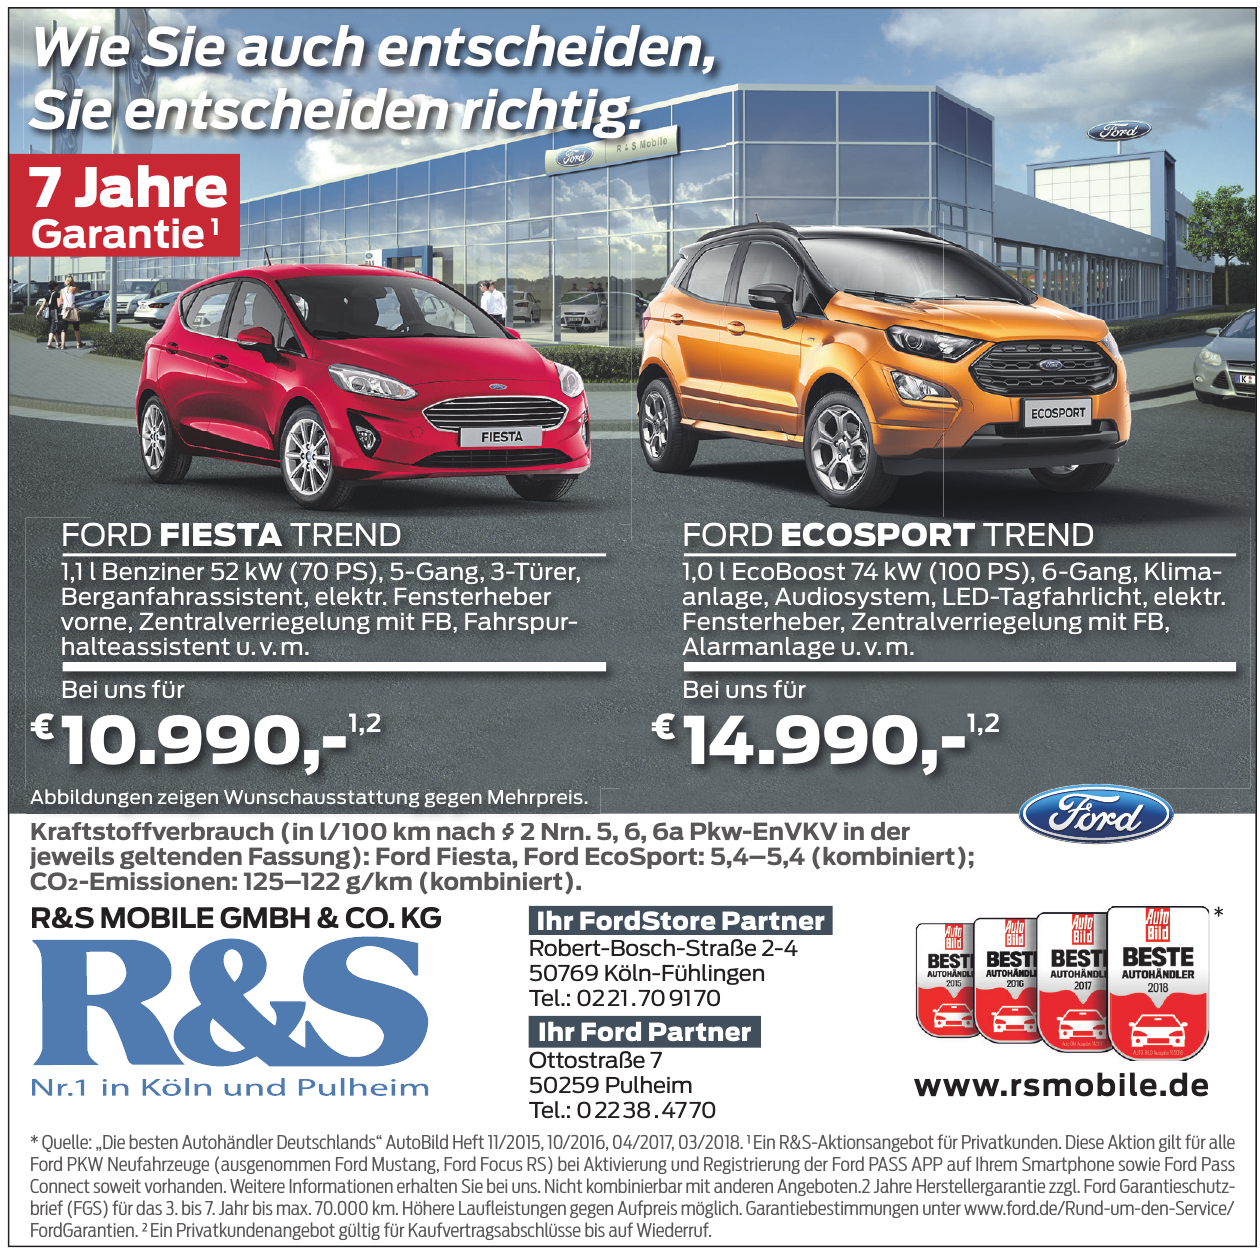 R&S Mobile GmbH & Co. KG